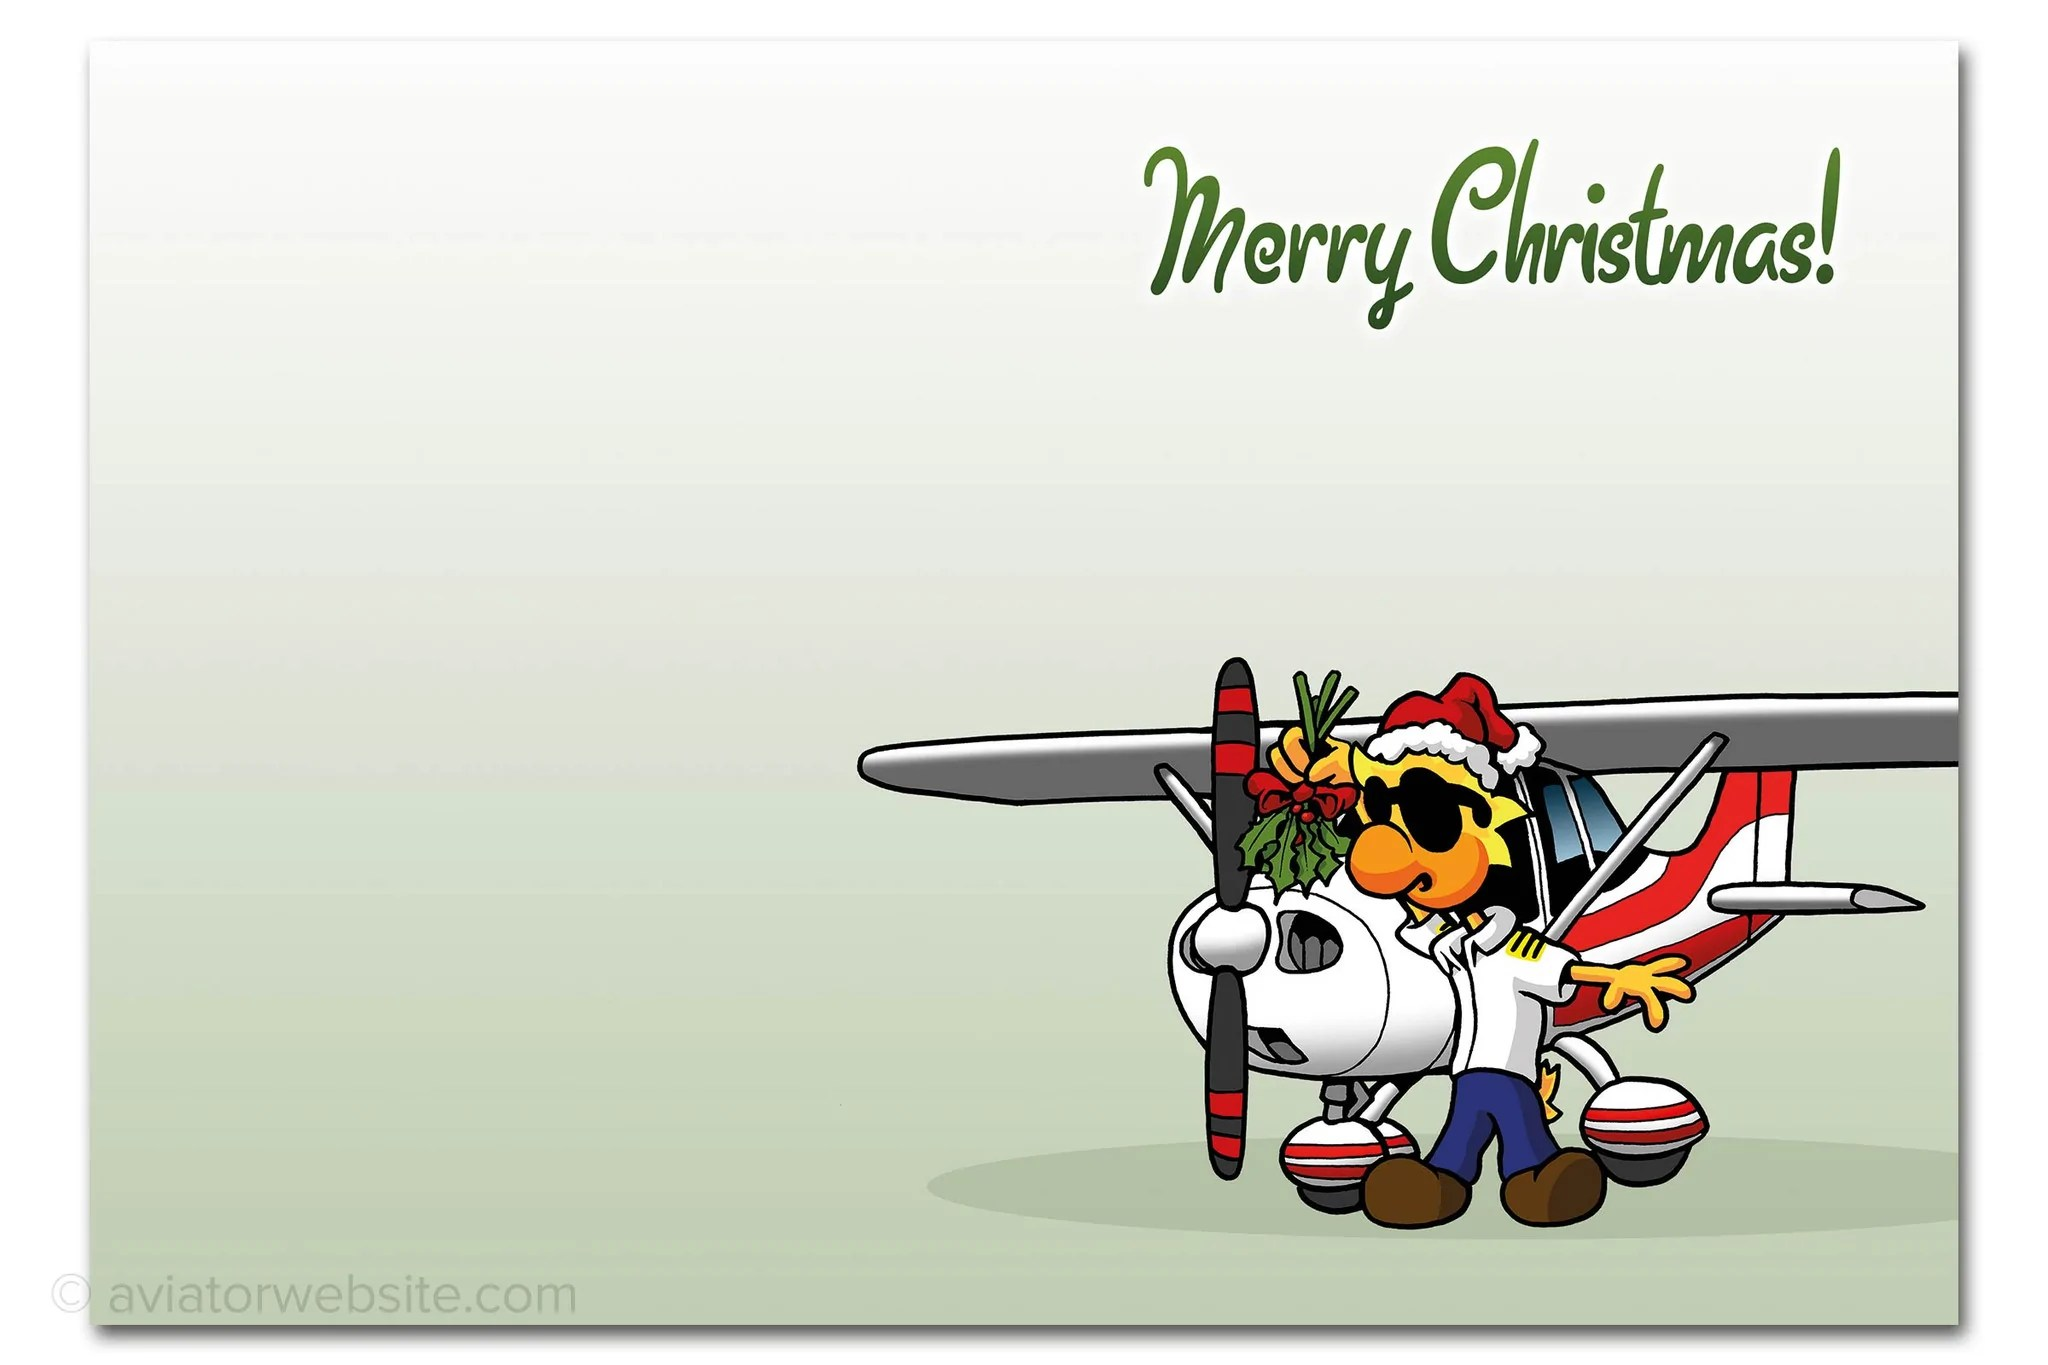 Aviation Christmas Cards For Pilots And Airplane Geeks